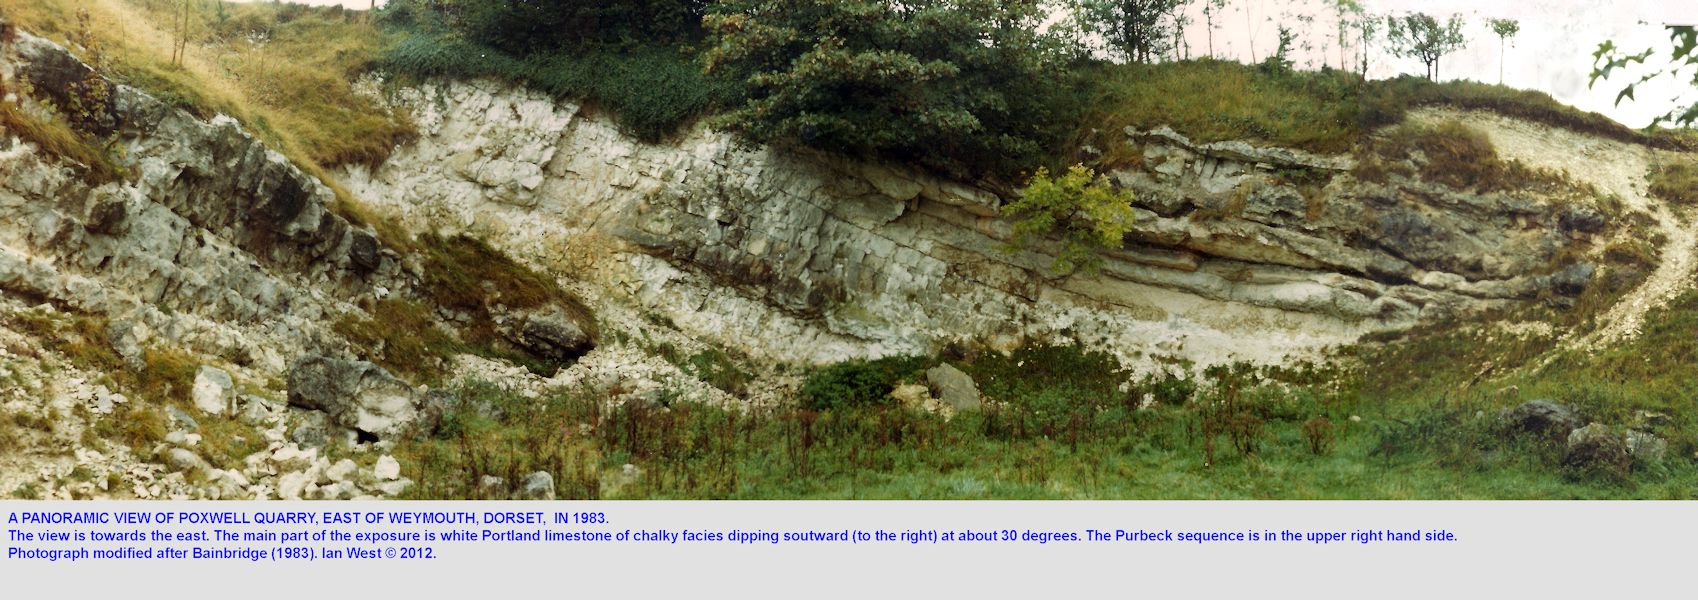 A panoramic view of Poxwell Quarry, Dorset, in 1983, after Bainbridge (1983)